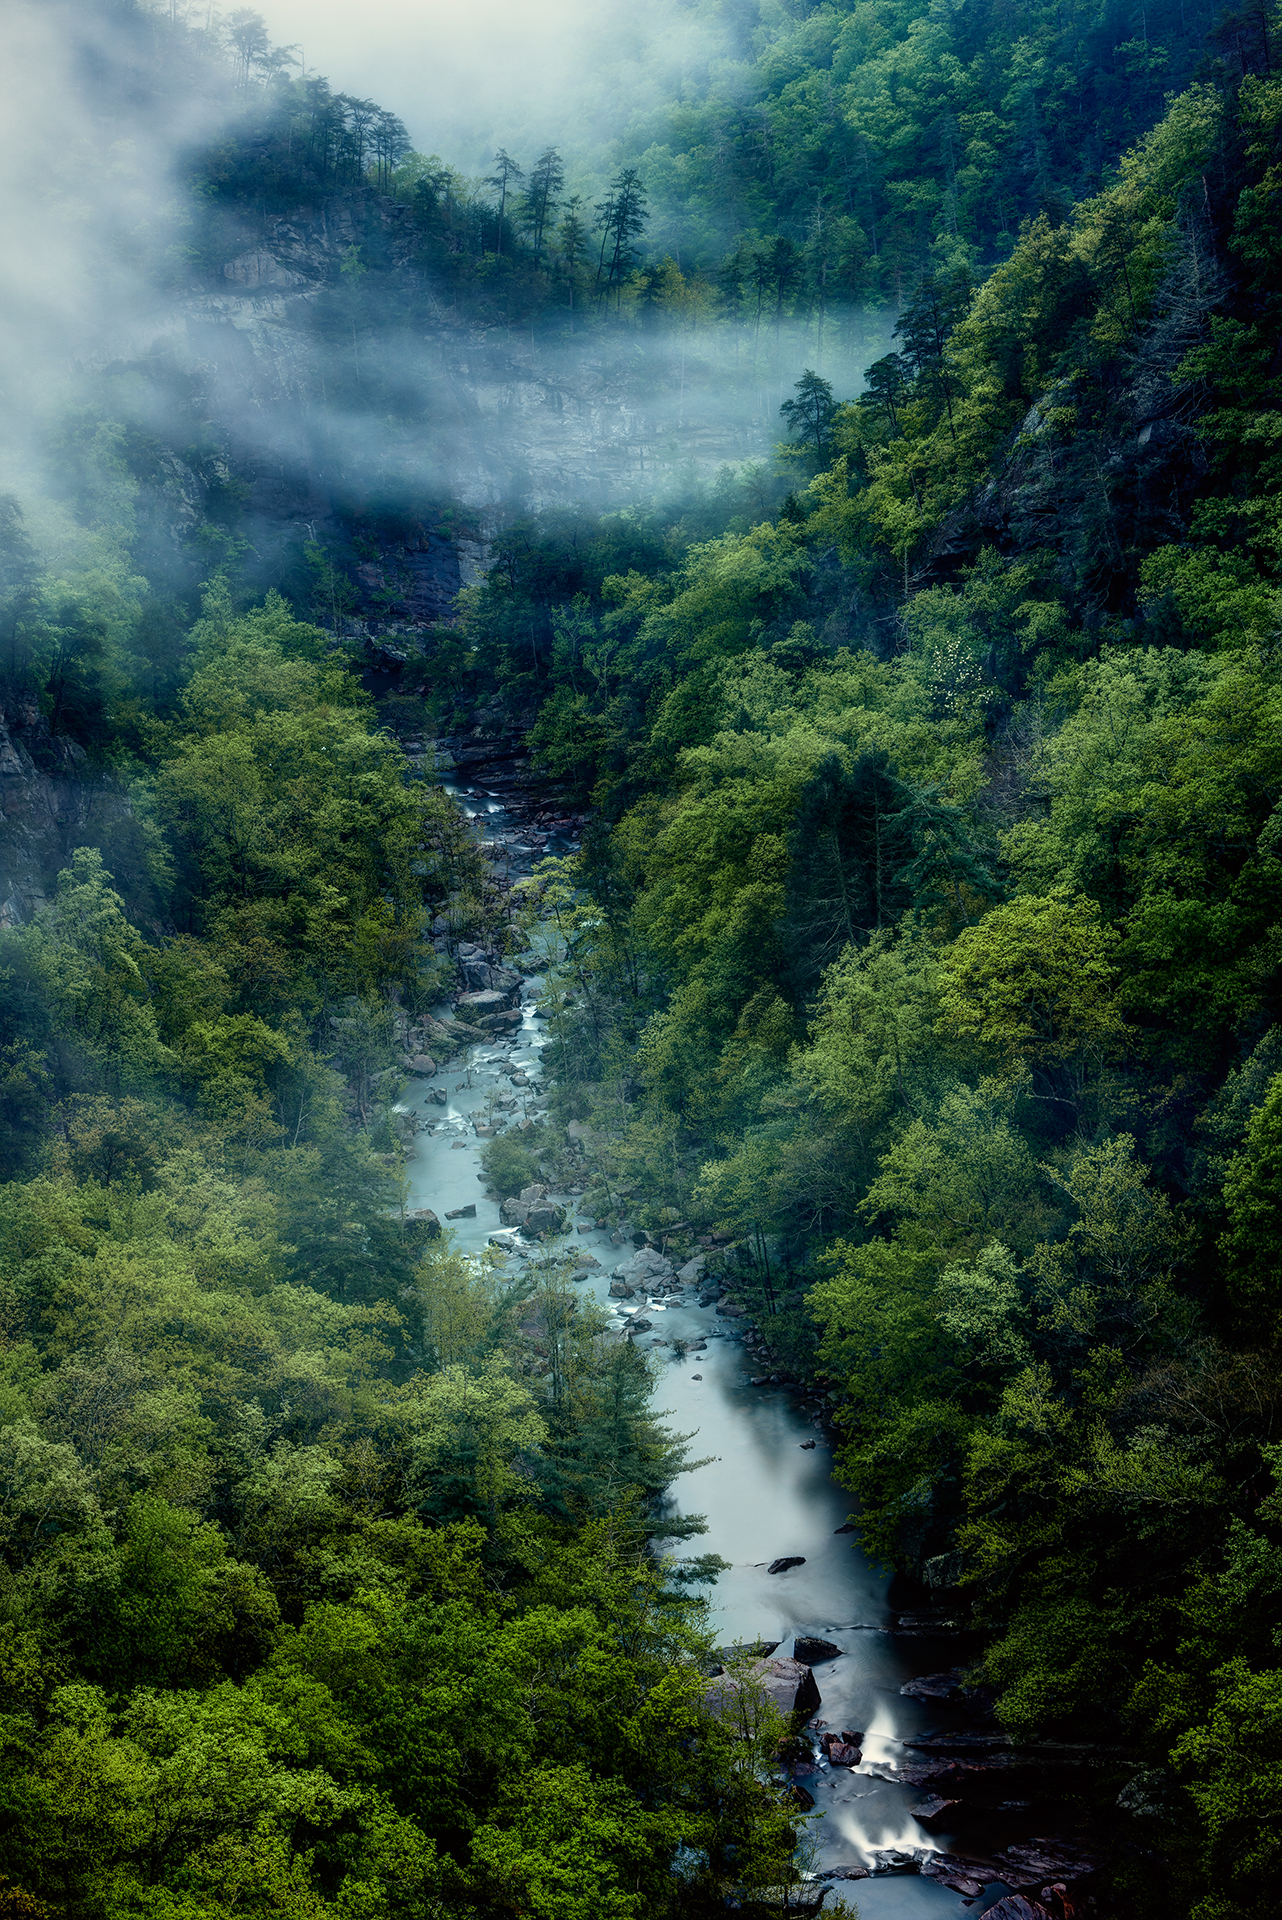 Tallulah Gorge State Park - Magic of the Gorge